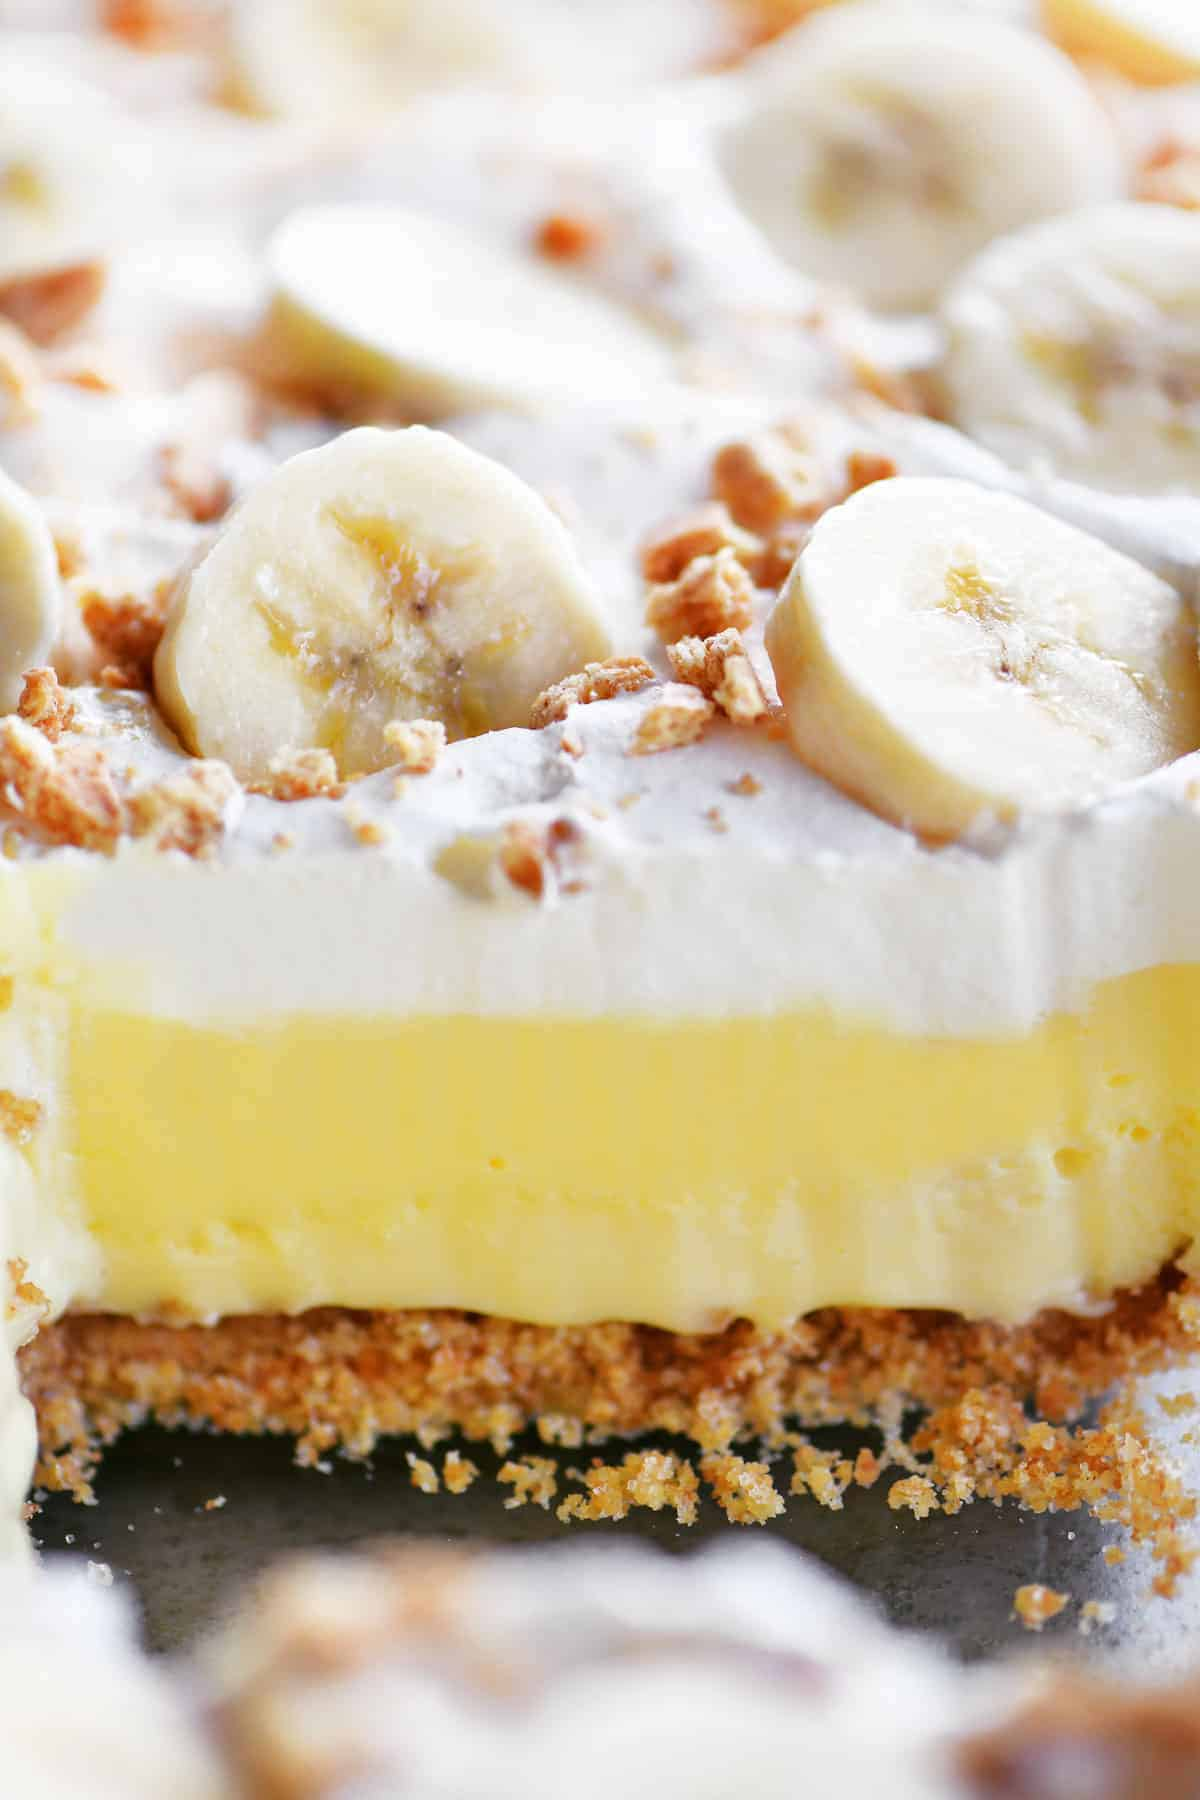 banana cheesecake dessert layers in slice